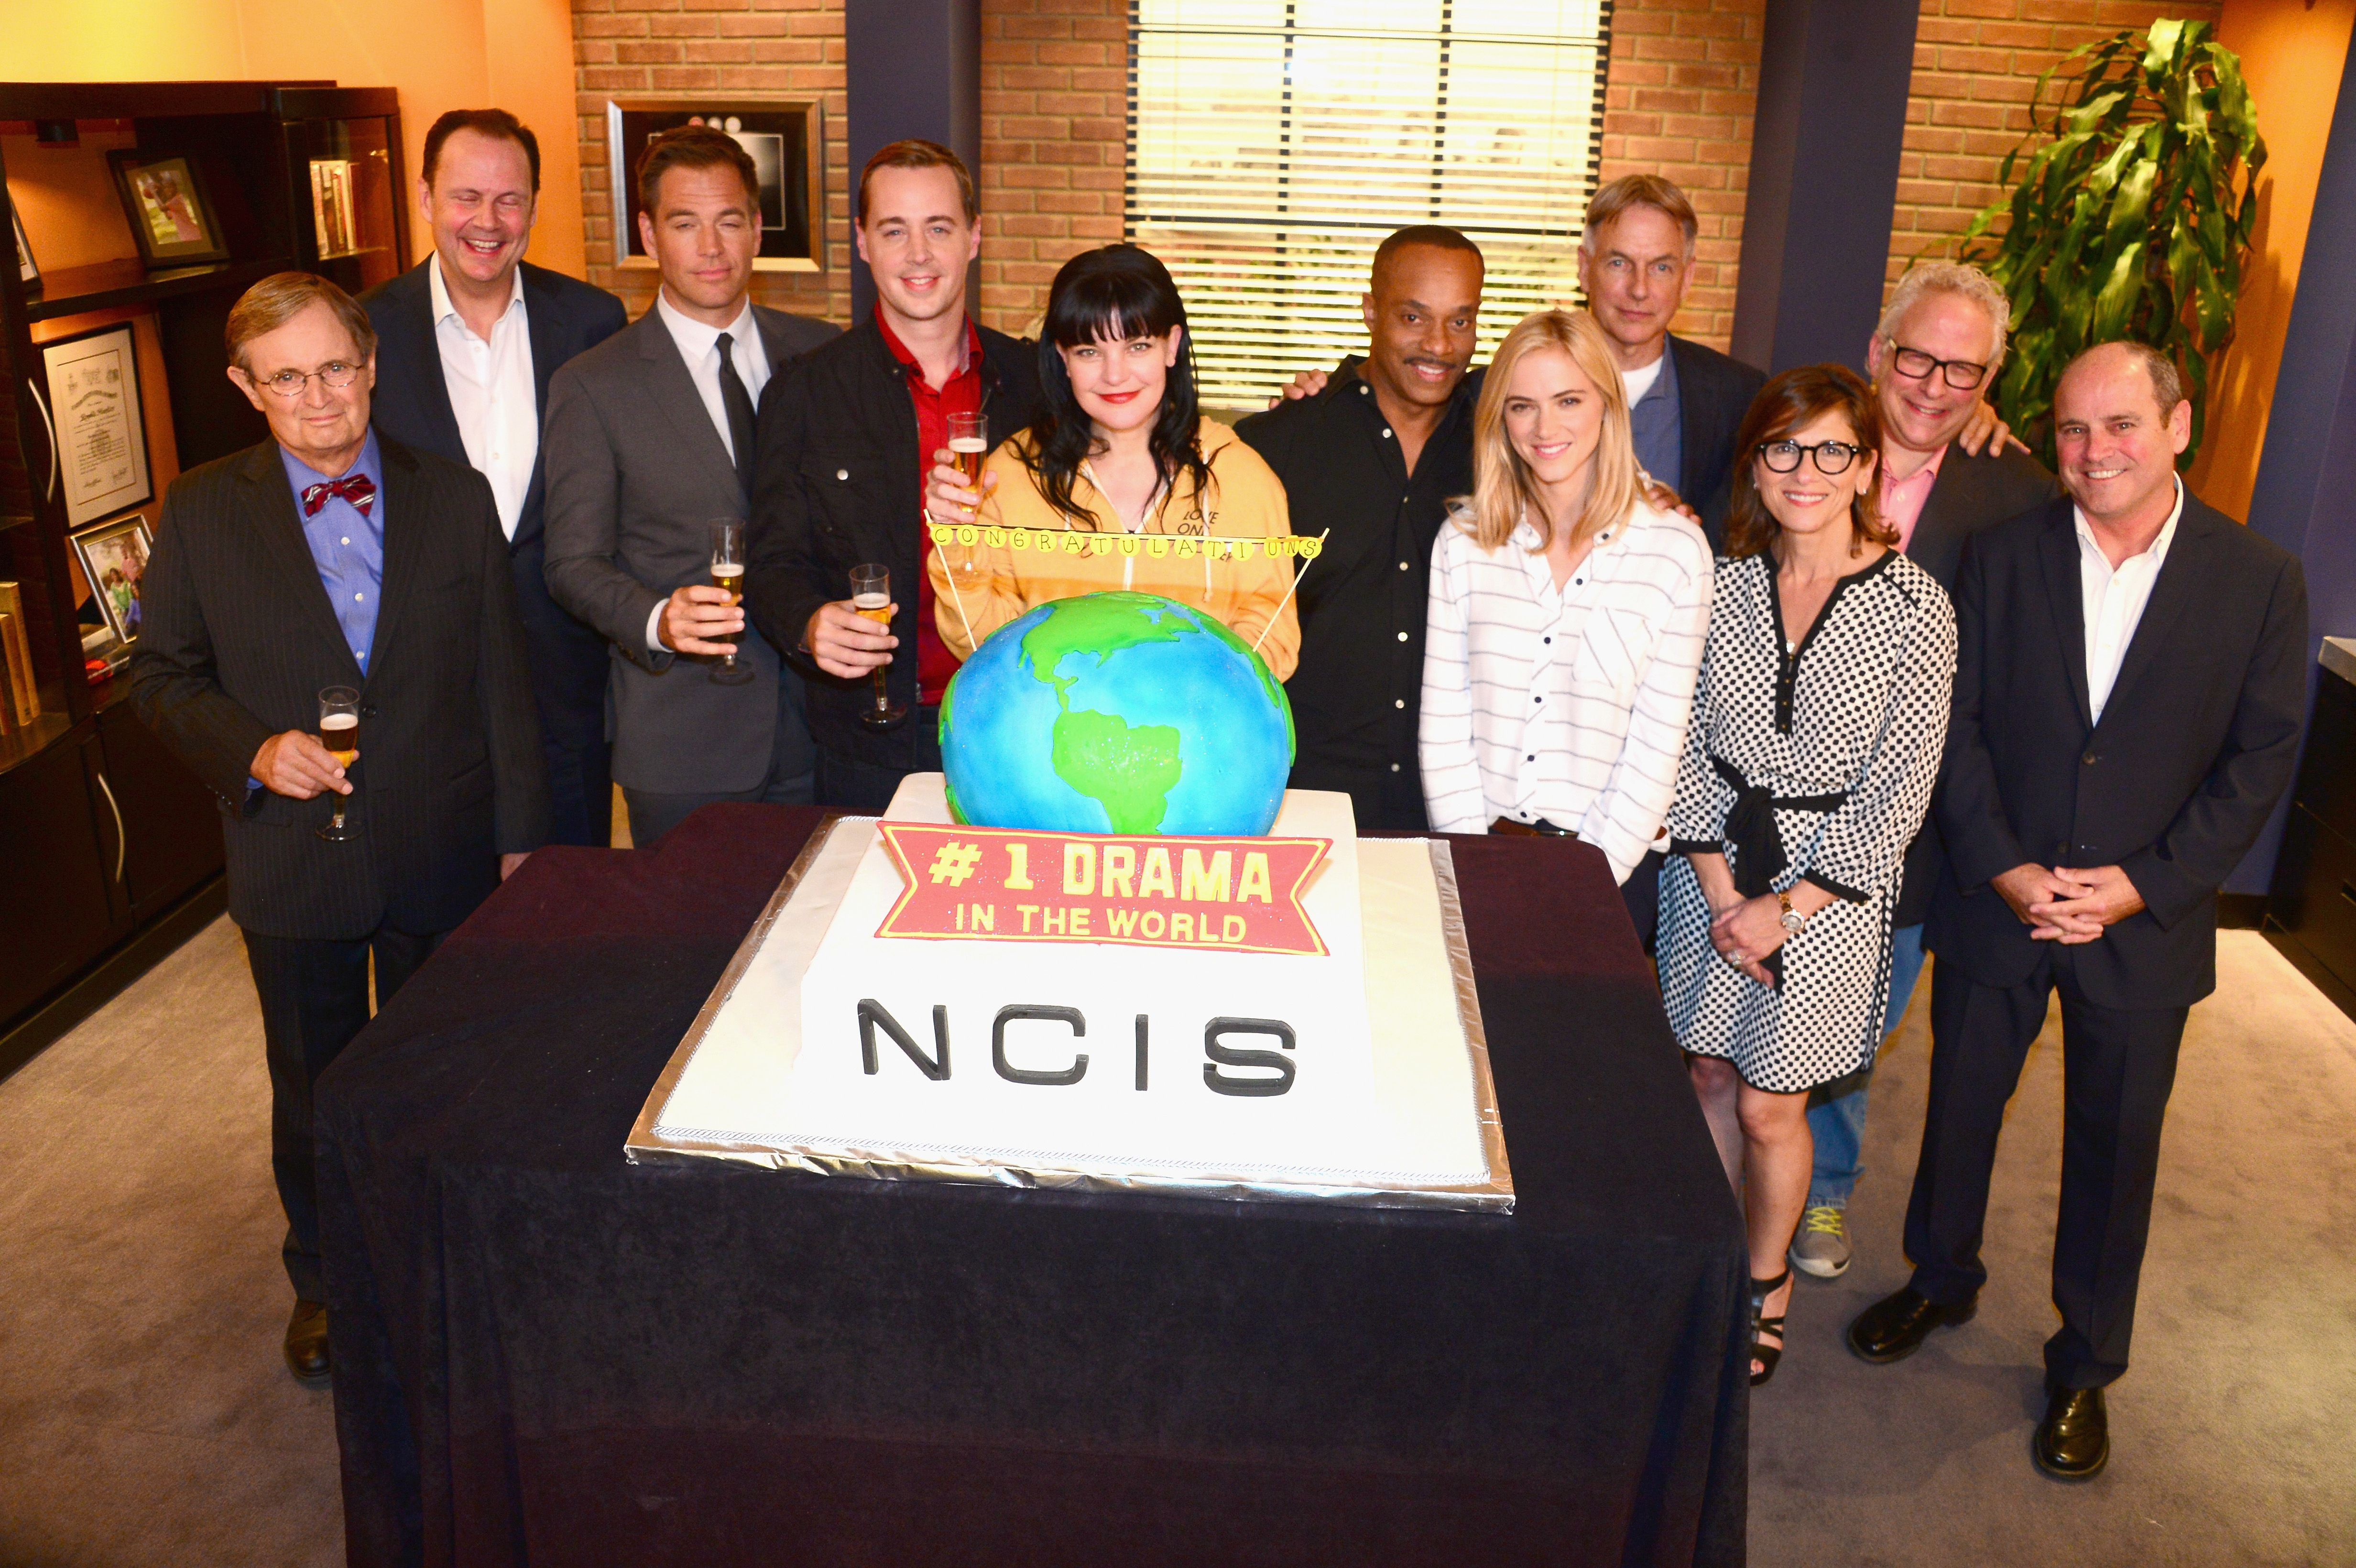 Fans are wondering who will be the next to leave NCIS / Getty Images